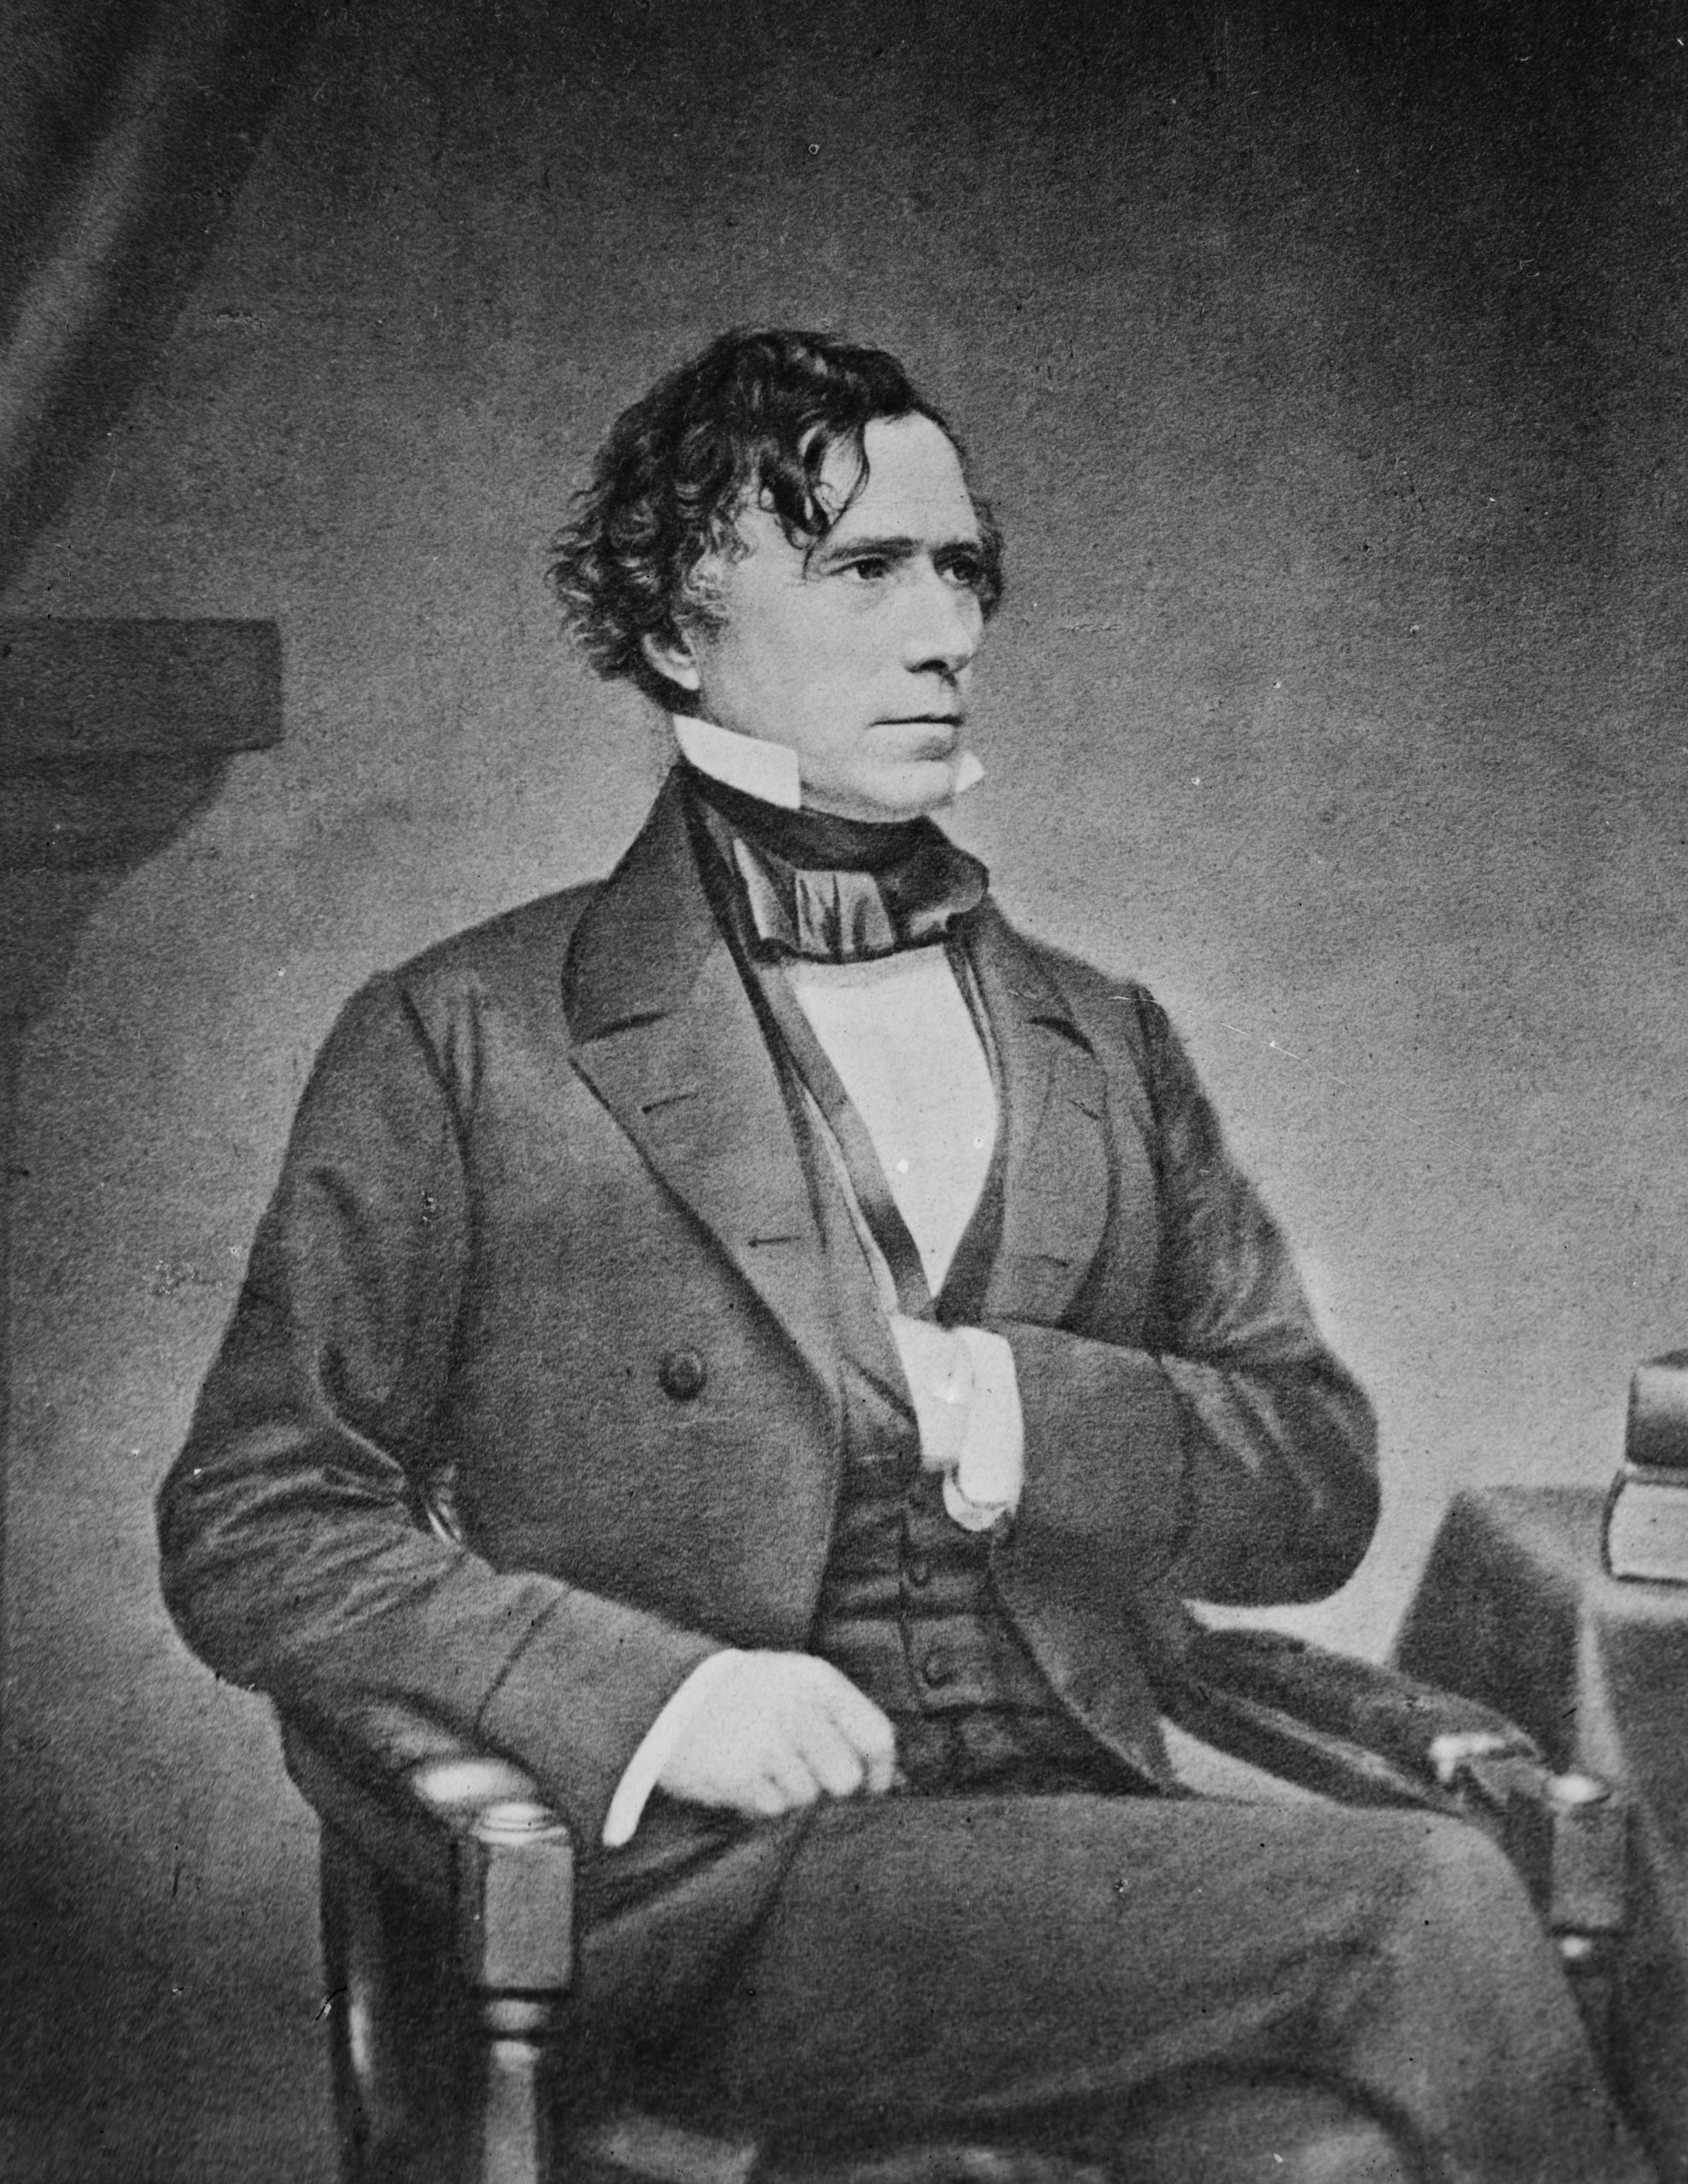 He was the 14th president of the United States, a northern Democrat who saw the abolitionist movement as a fundamental threat to the unity of the nation.